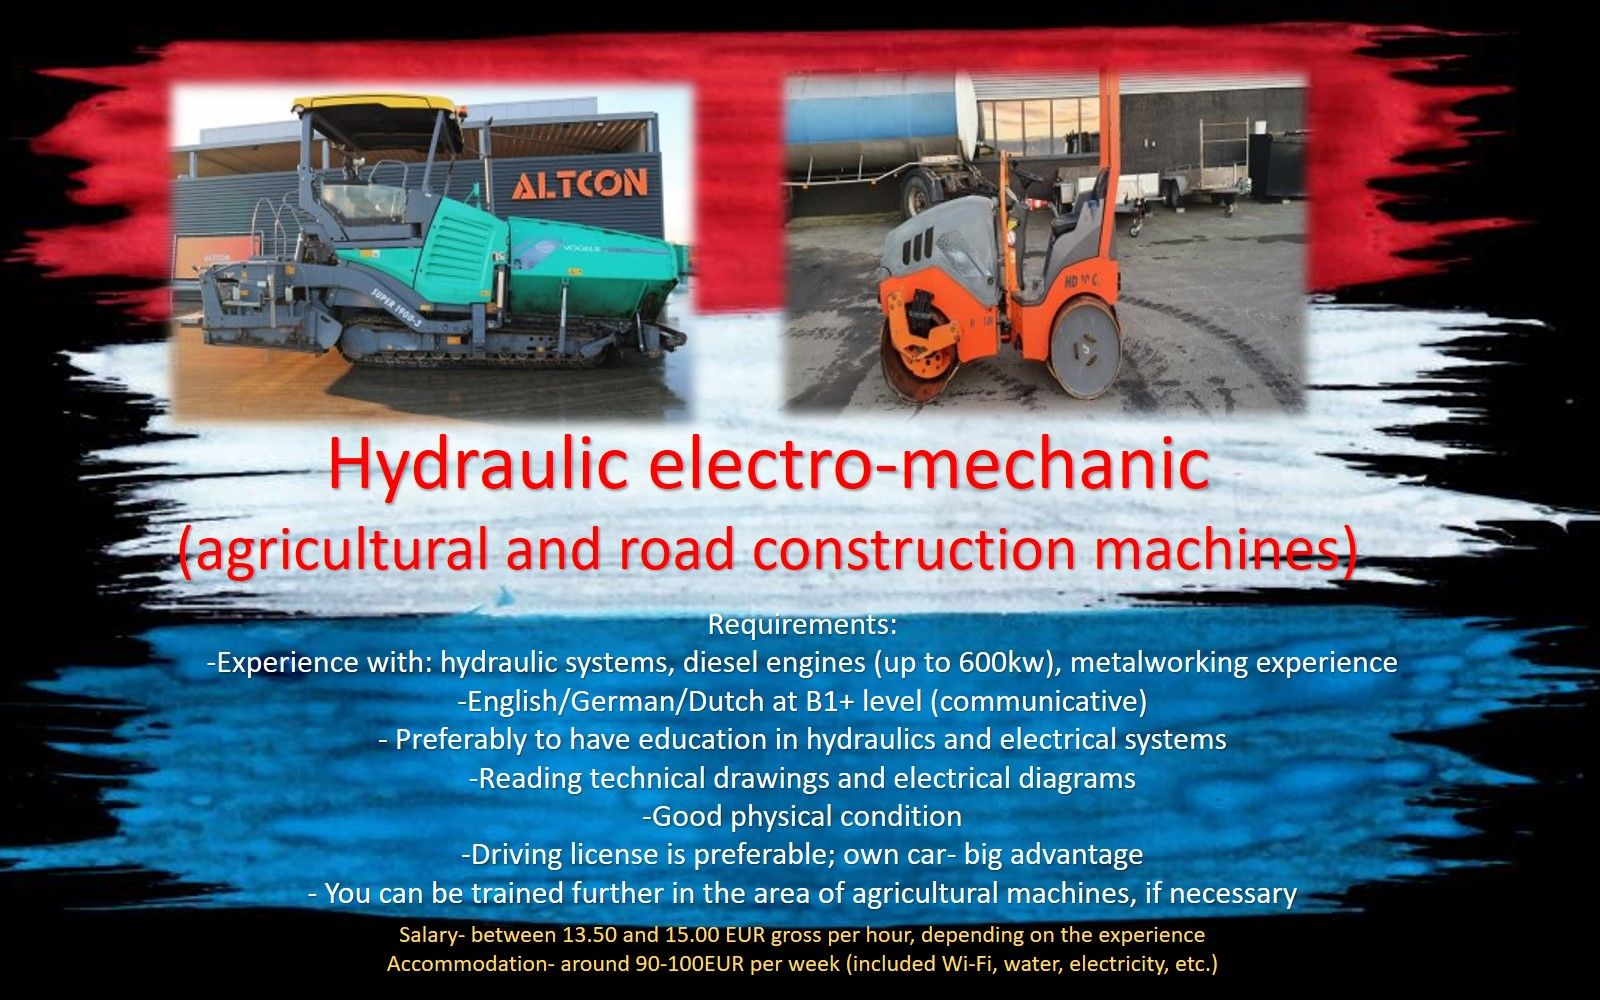 Hydraulic electro-mechanic job work in Holland Amsterdam Rotterdam Eindhoven